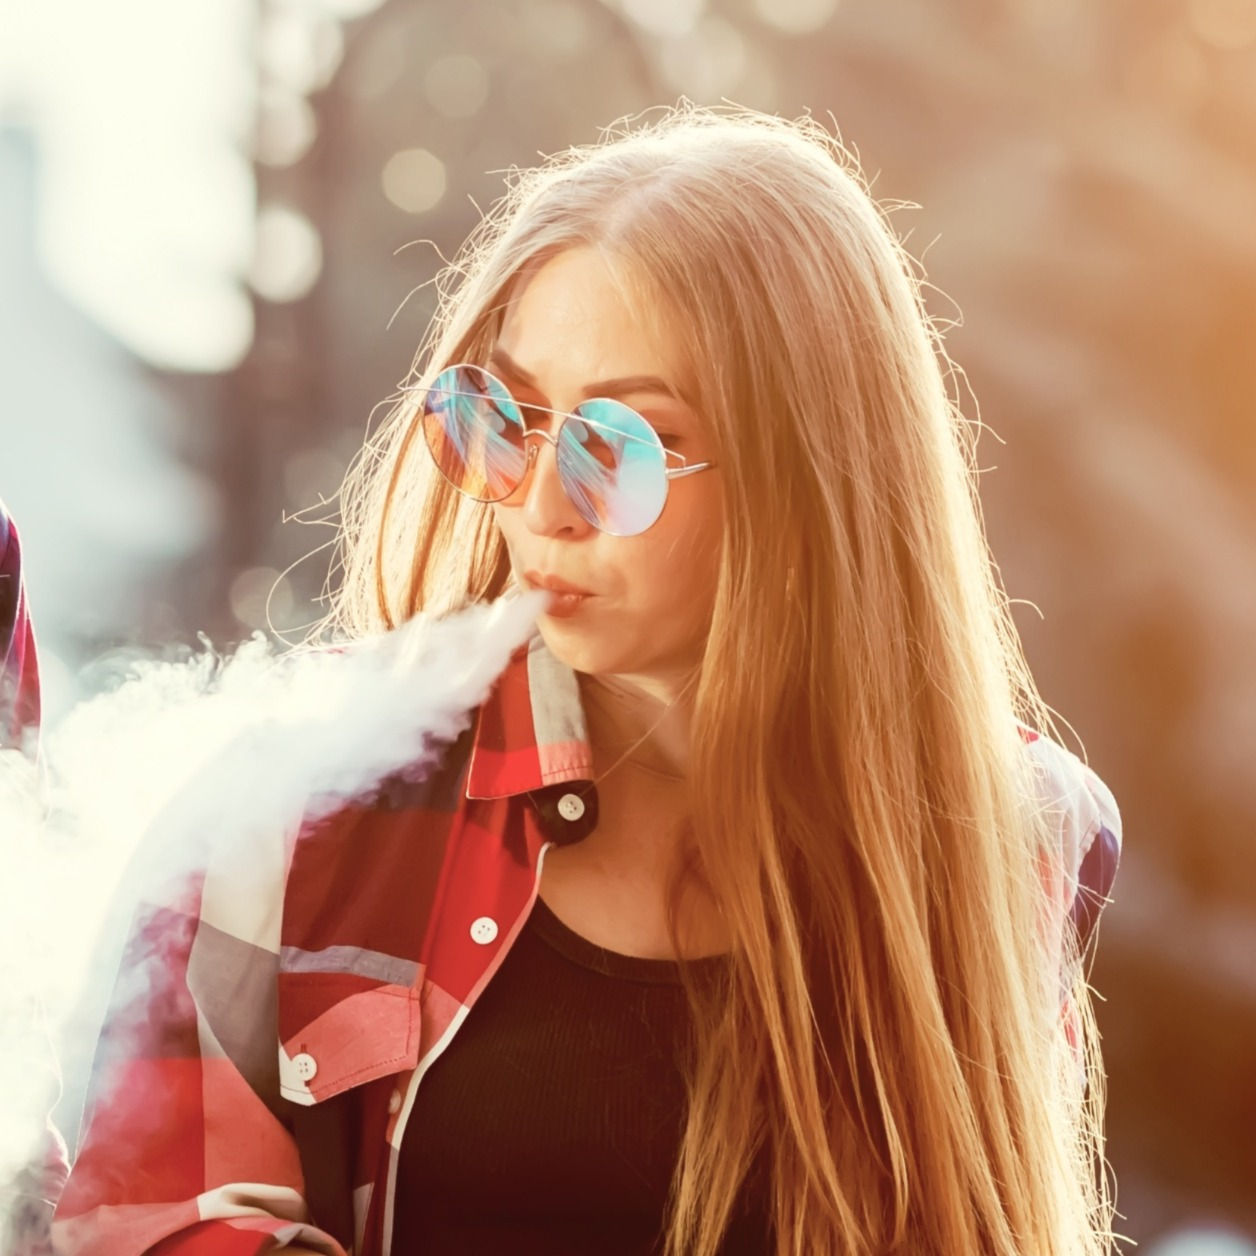 New Federal Study Suggests Public >> Federal Study Shows An Increase In Vaping Among Teens Montgomery